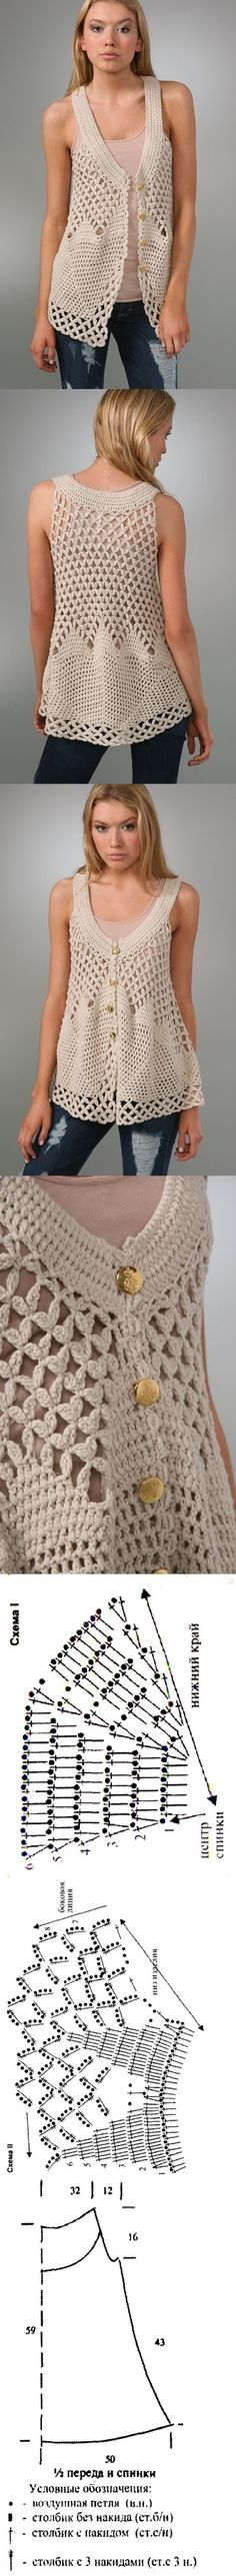 Crochet cotton vest - has graphs